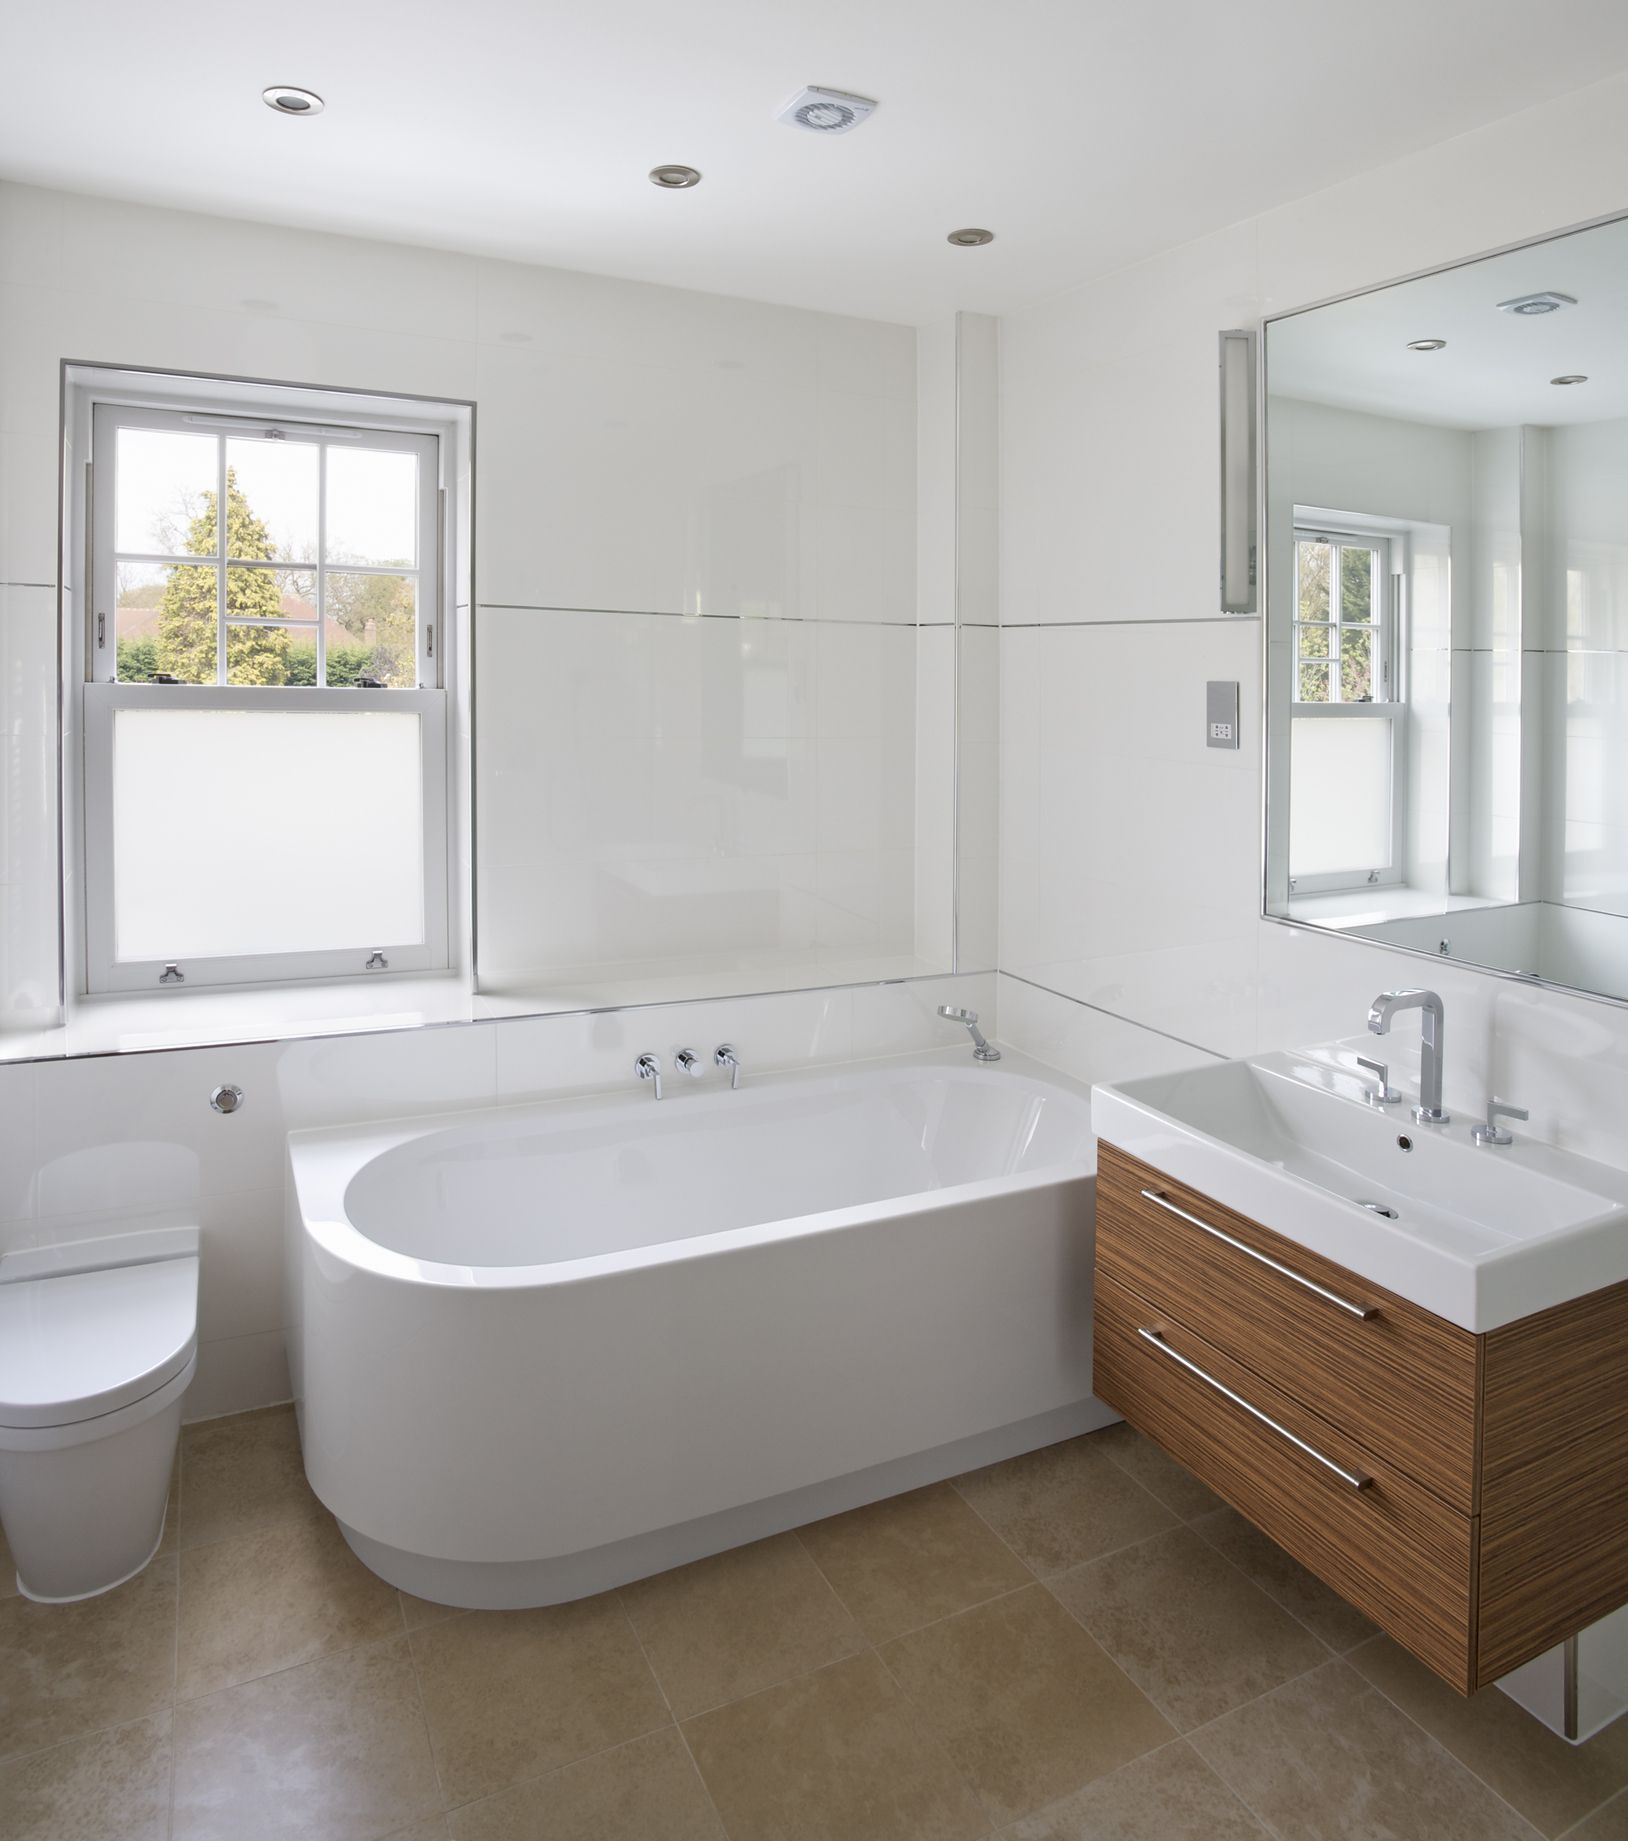 How Long Does a Refinished Tub Last